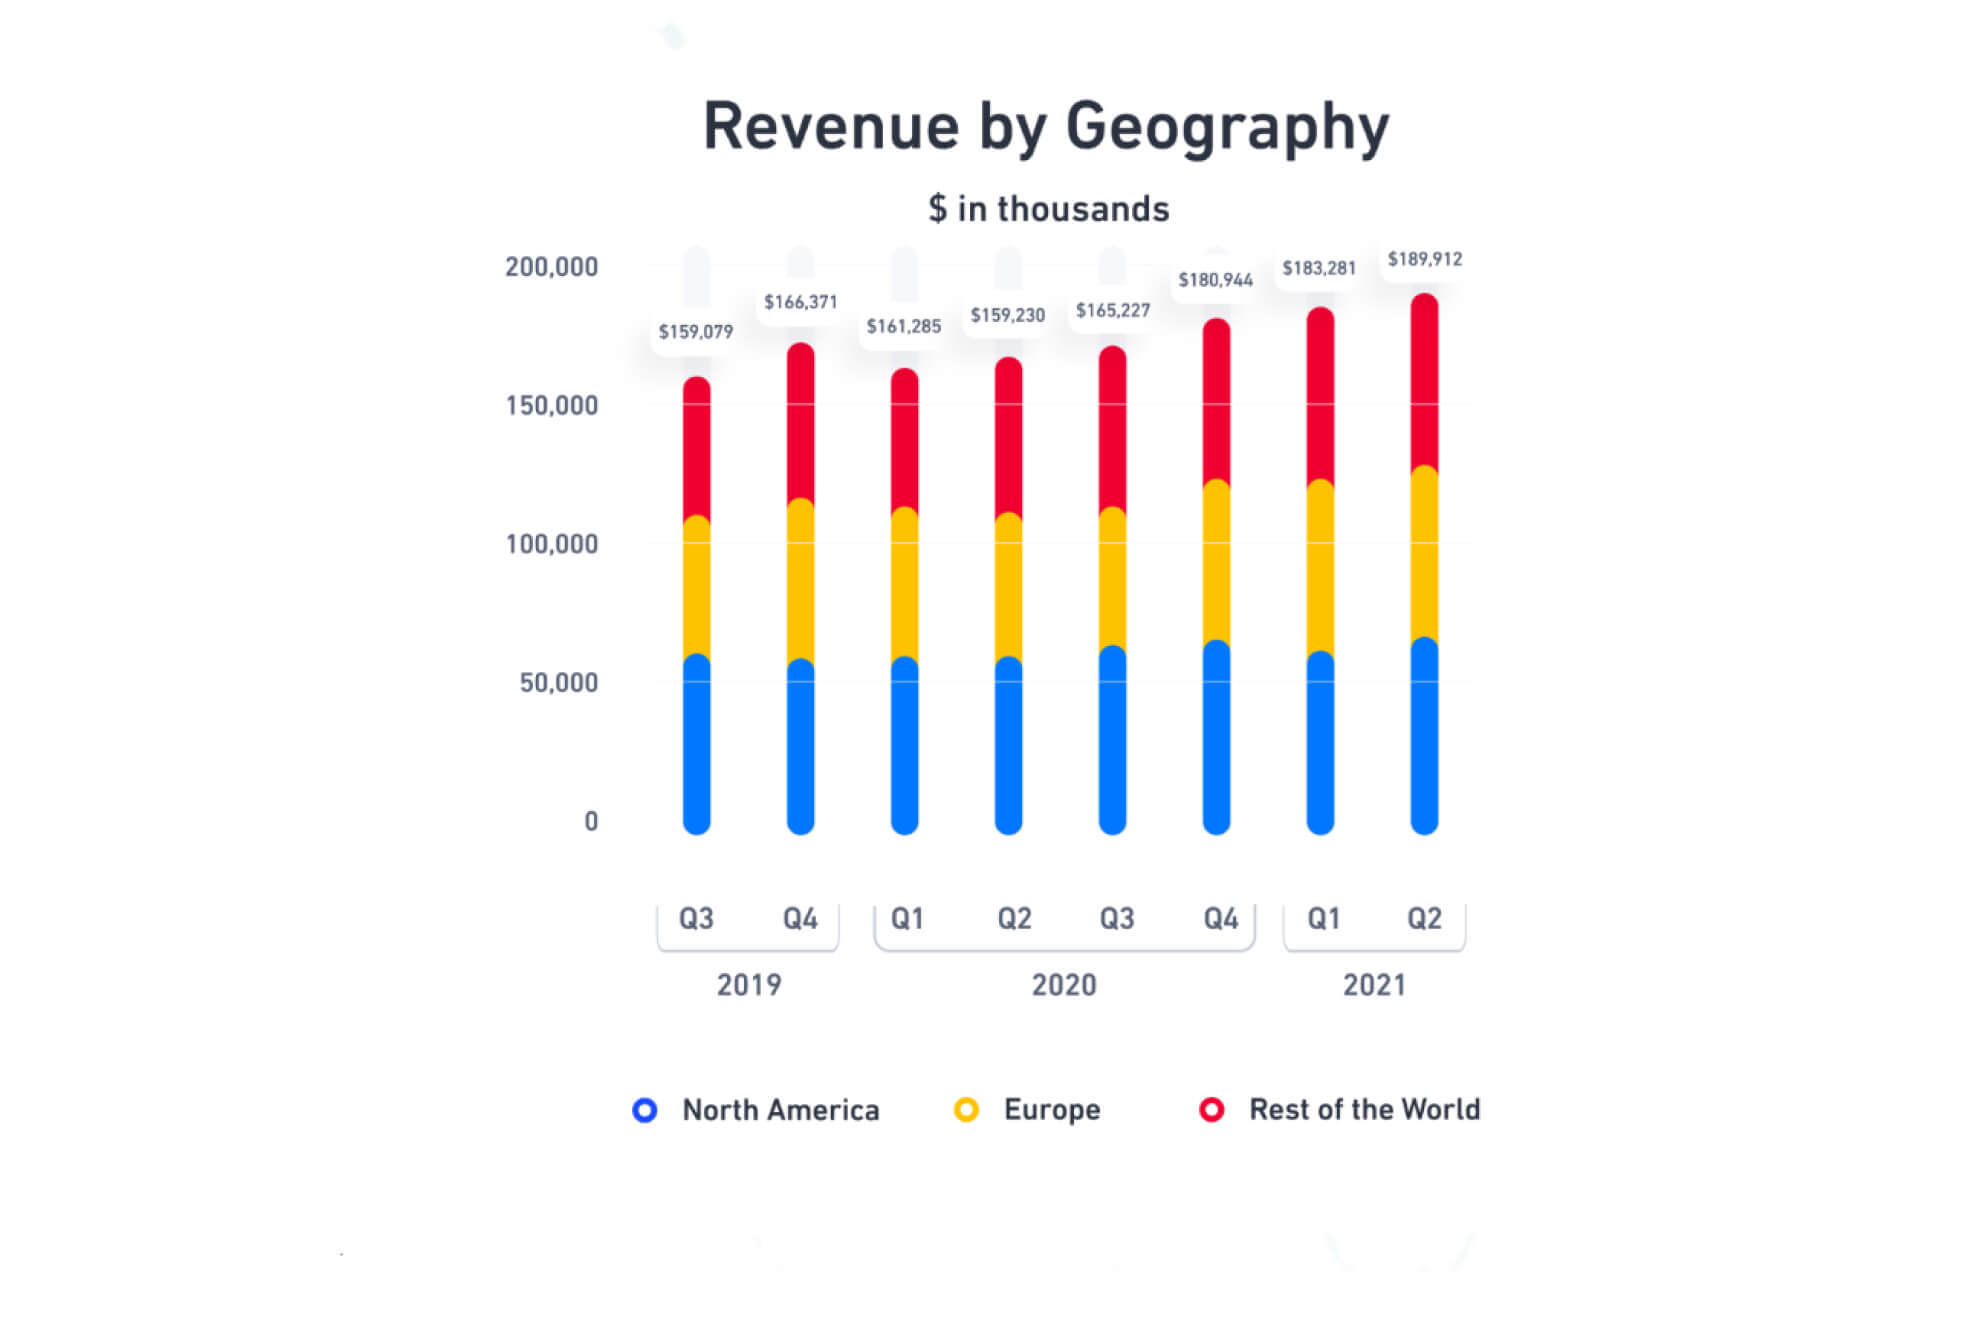 Revenue by Geography